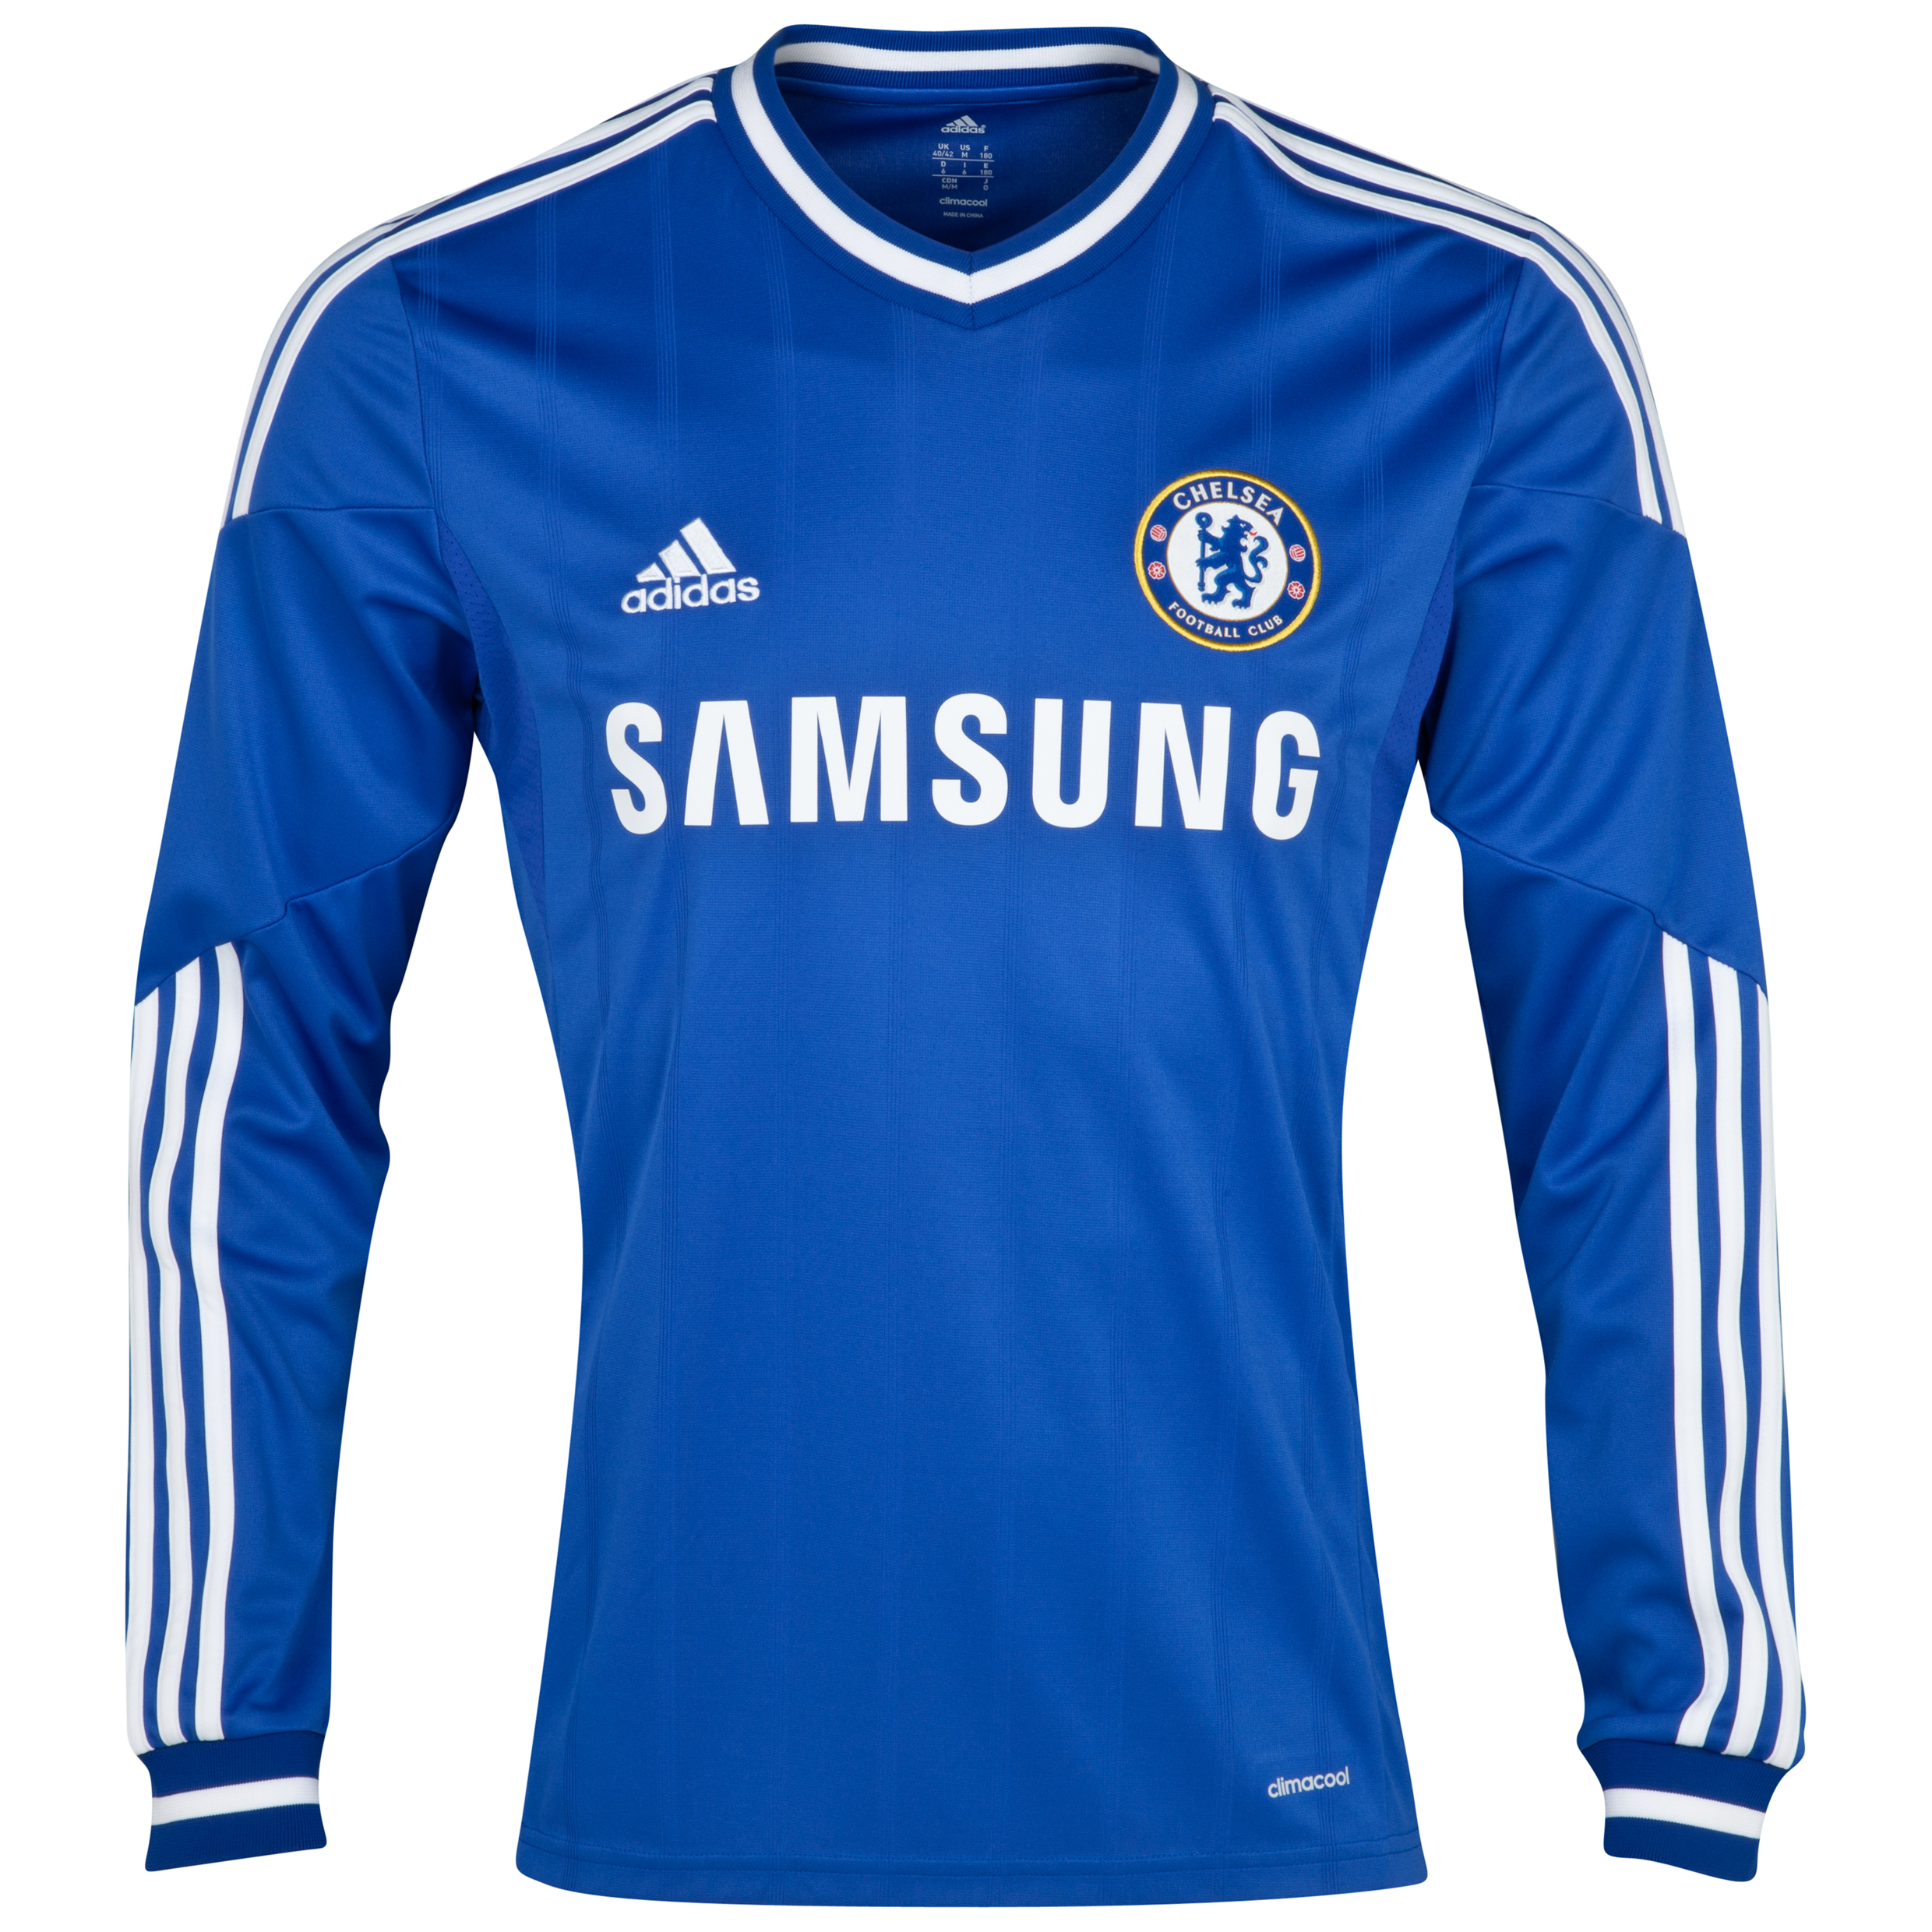 Chelsea Home Shirt 2013/14 - Long Sleeve - Kids